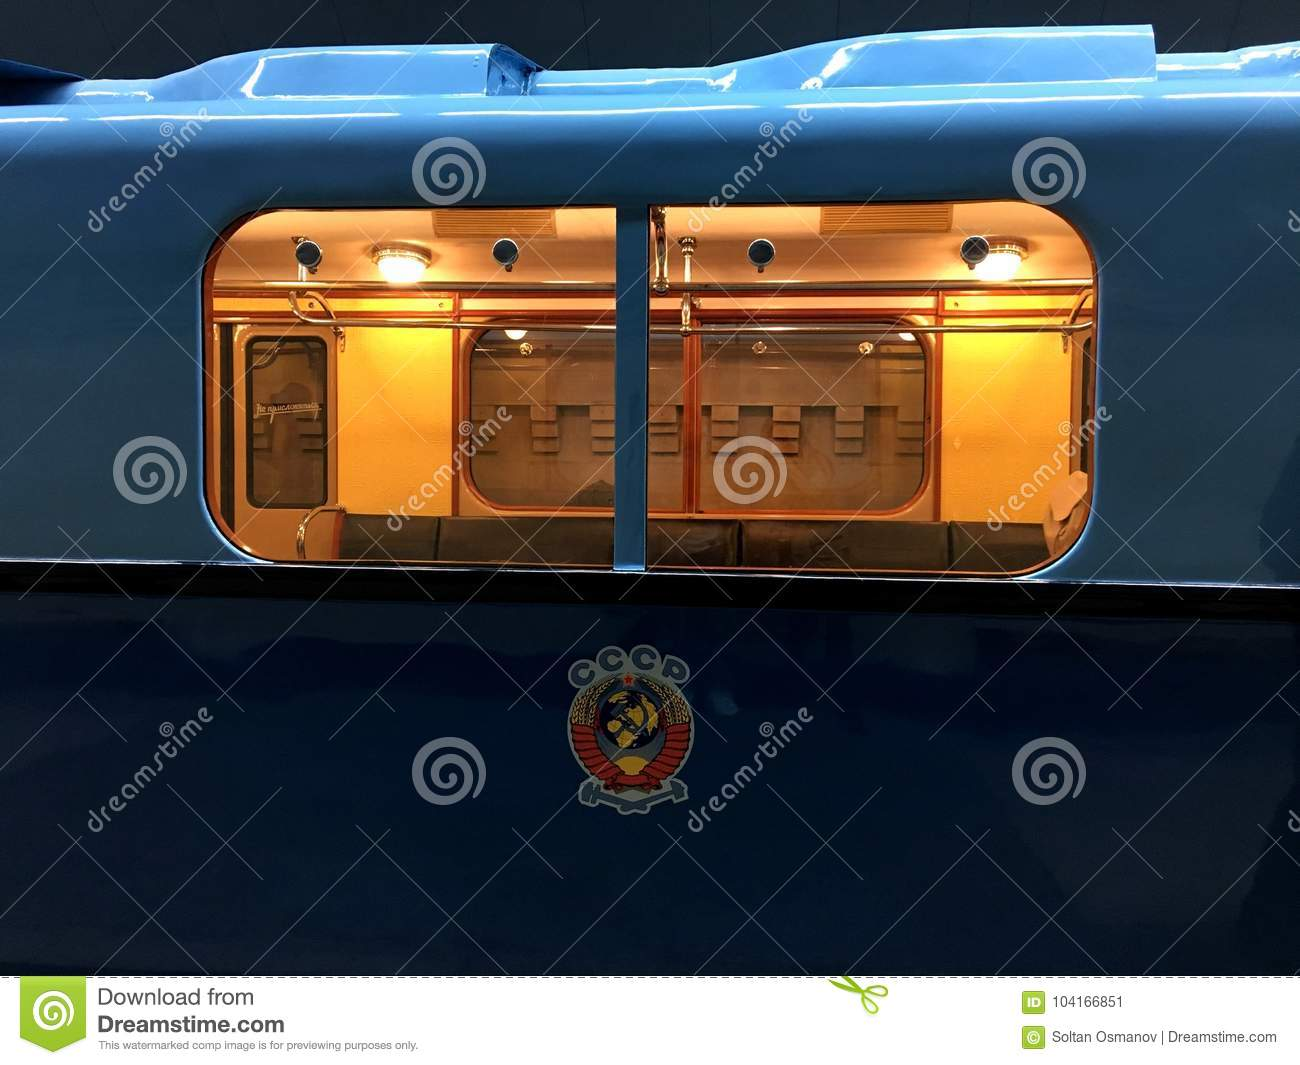 Old metro car. Transport of the USSR